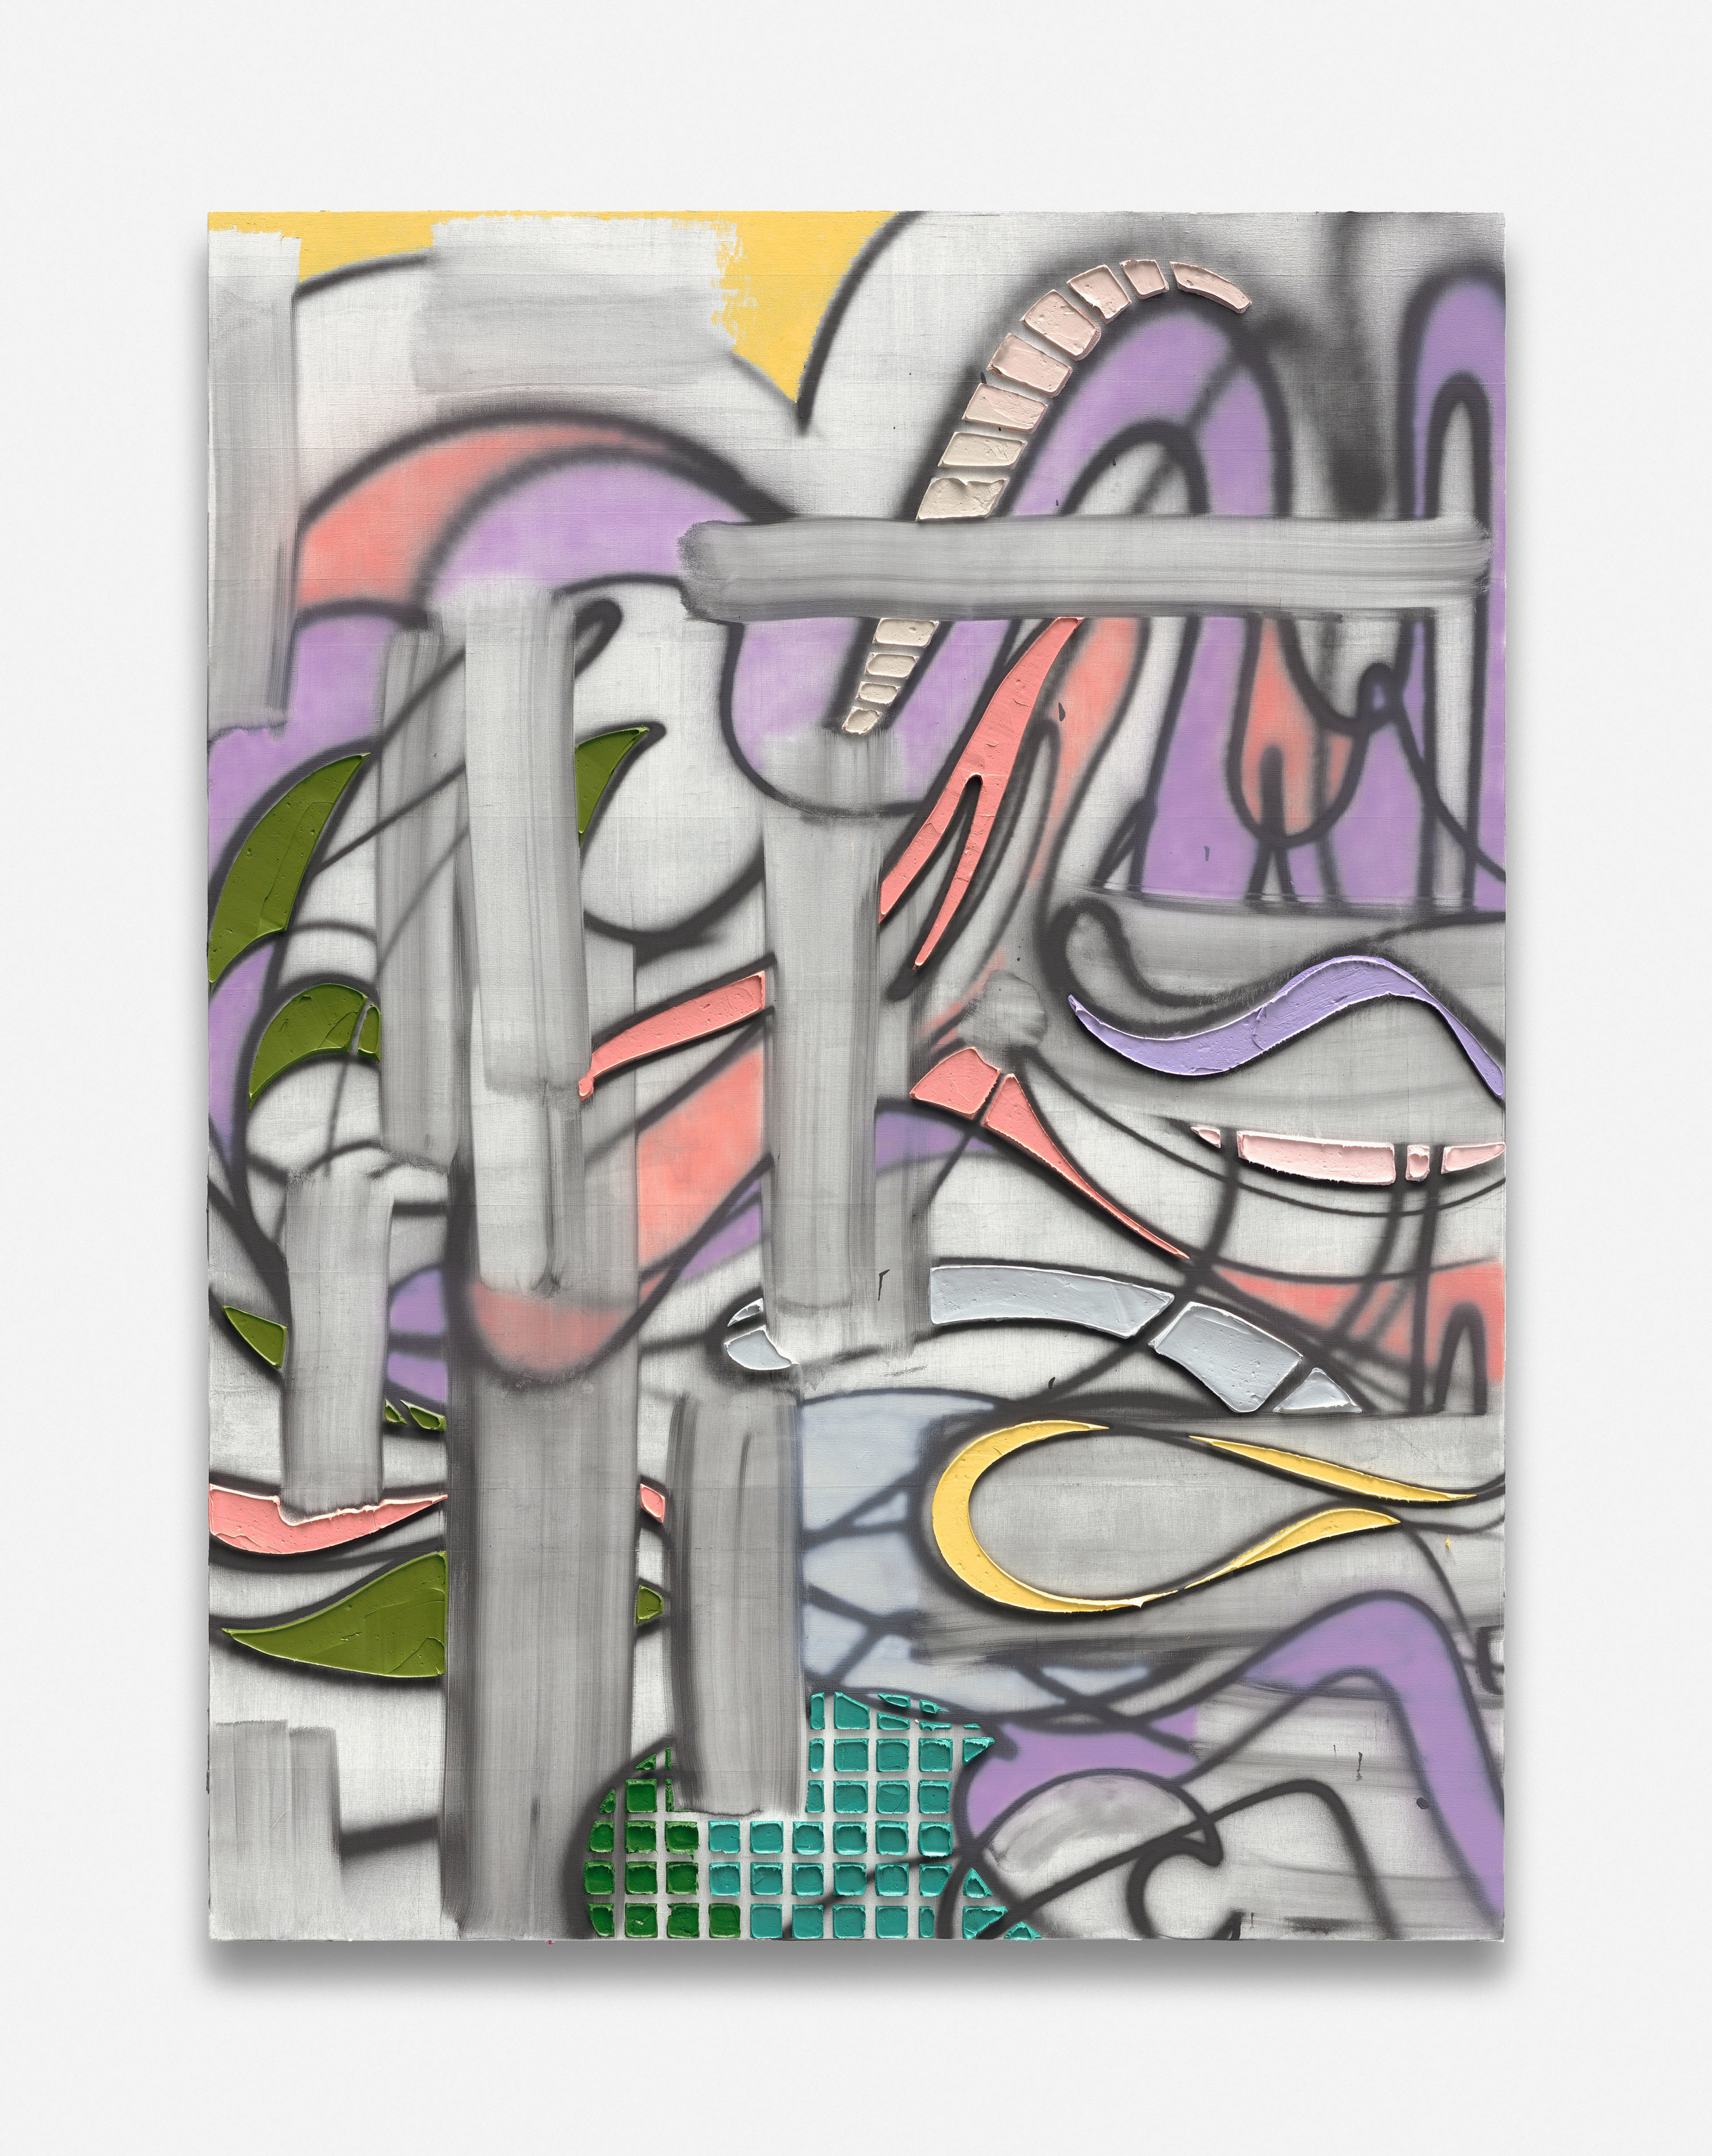 """KELTIE FERRIS. """"DRAG TRAP"""" (2018). OIL AND ACRYLIC ON CANVAS IN THE ARTIST'S FRAME. TRIPTYCH; EACH PANEL: 80 X 60 IN. © KELTIE FERRIS. COURTESY OF THE ARTIST AND MITCHELL-INNES & NASH, NEW YORK."""